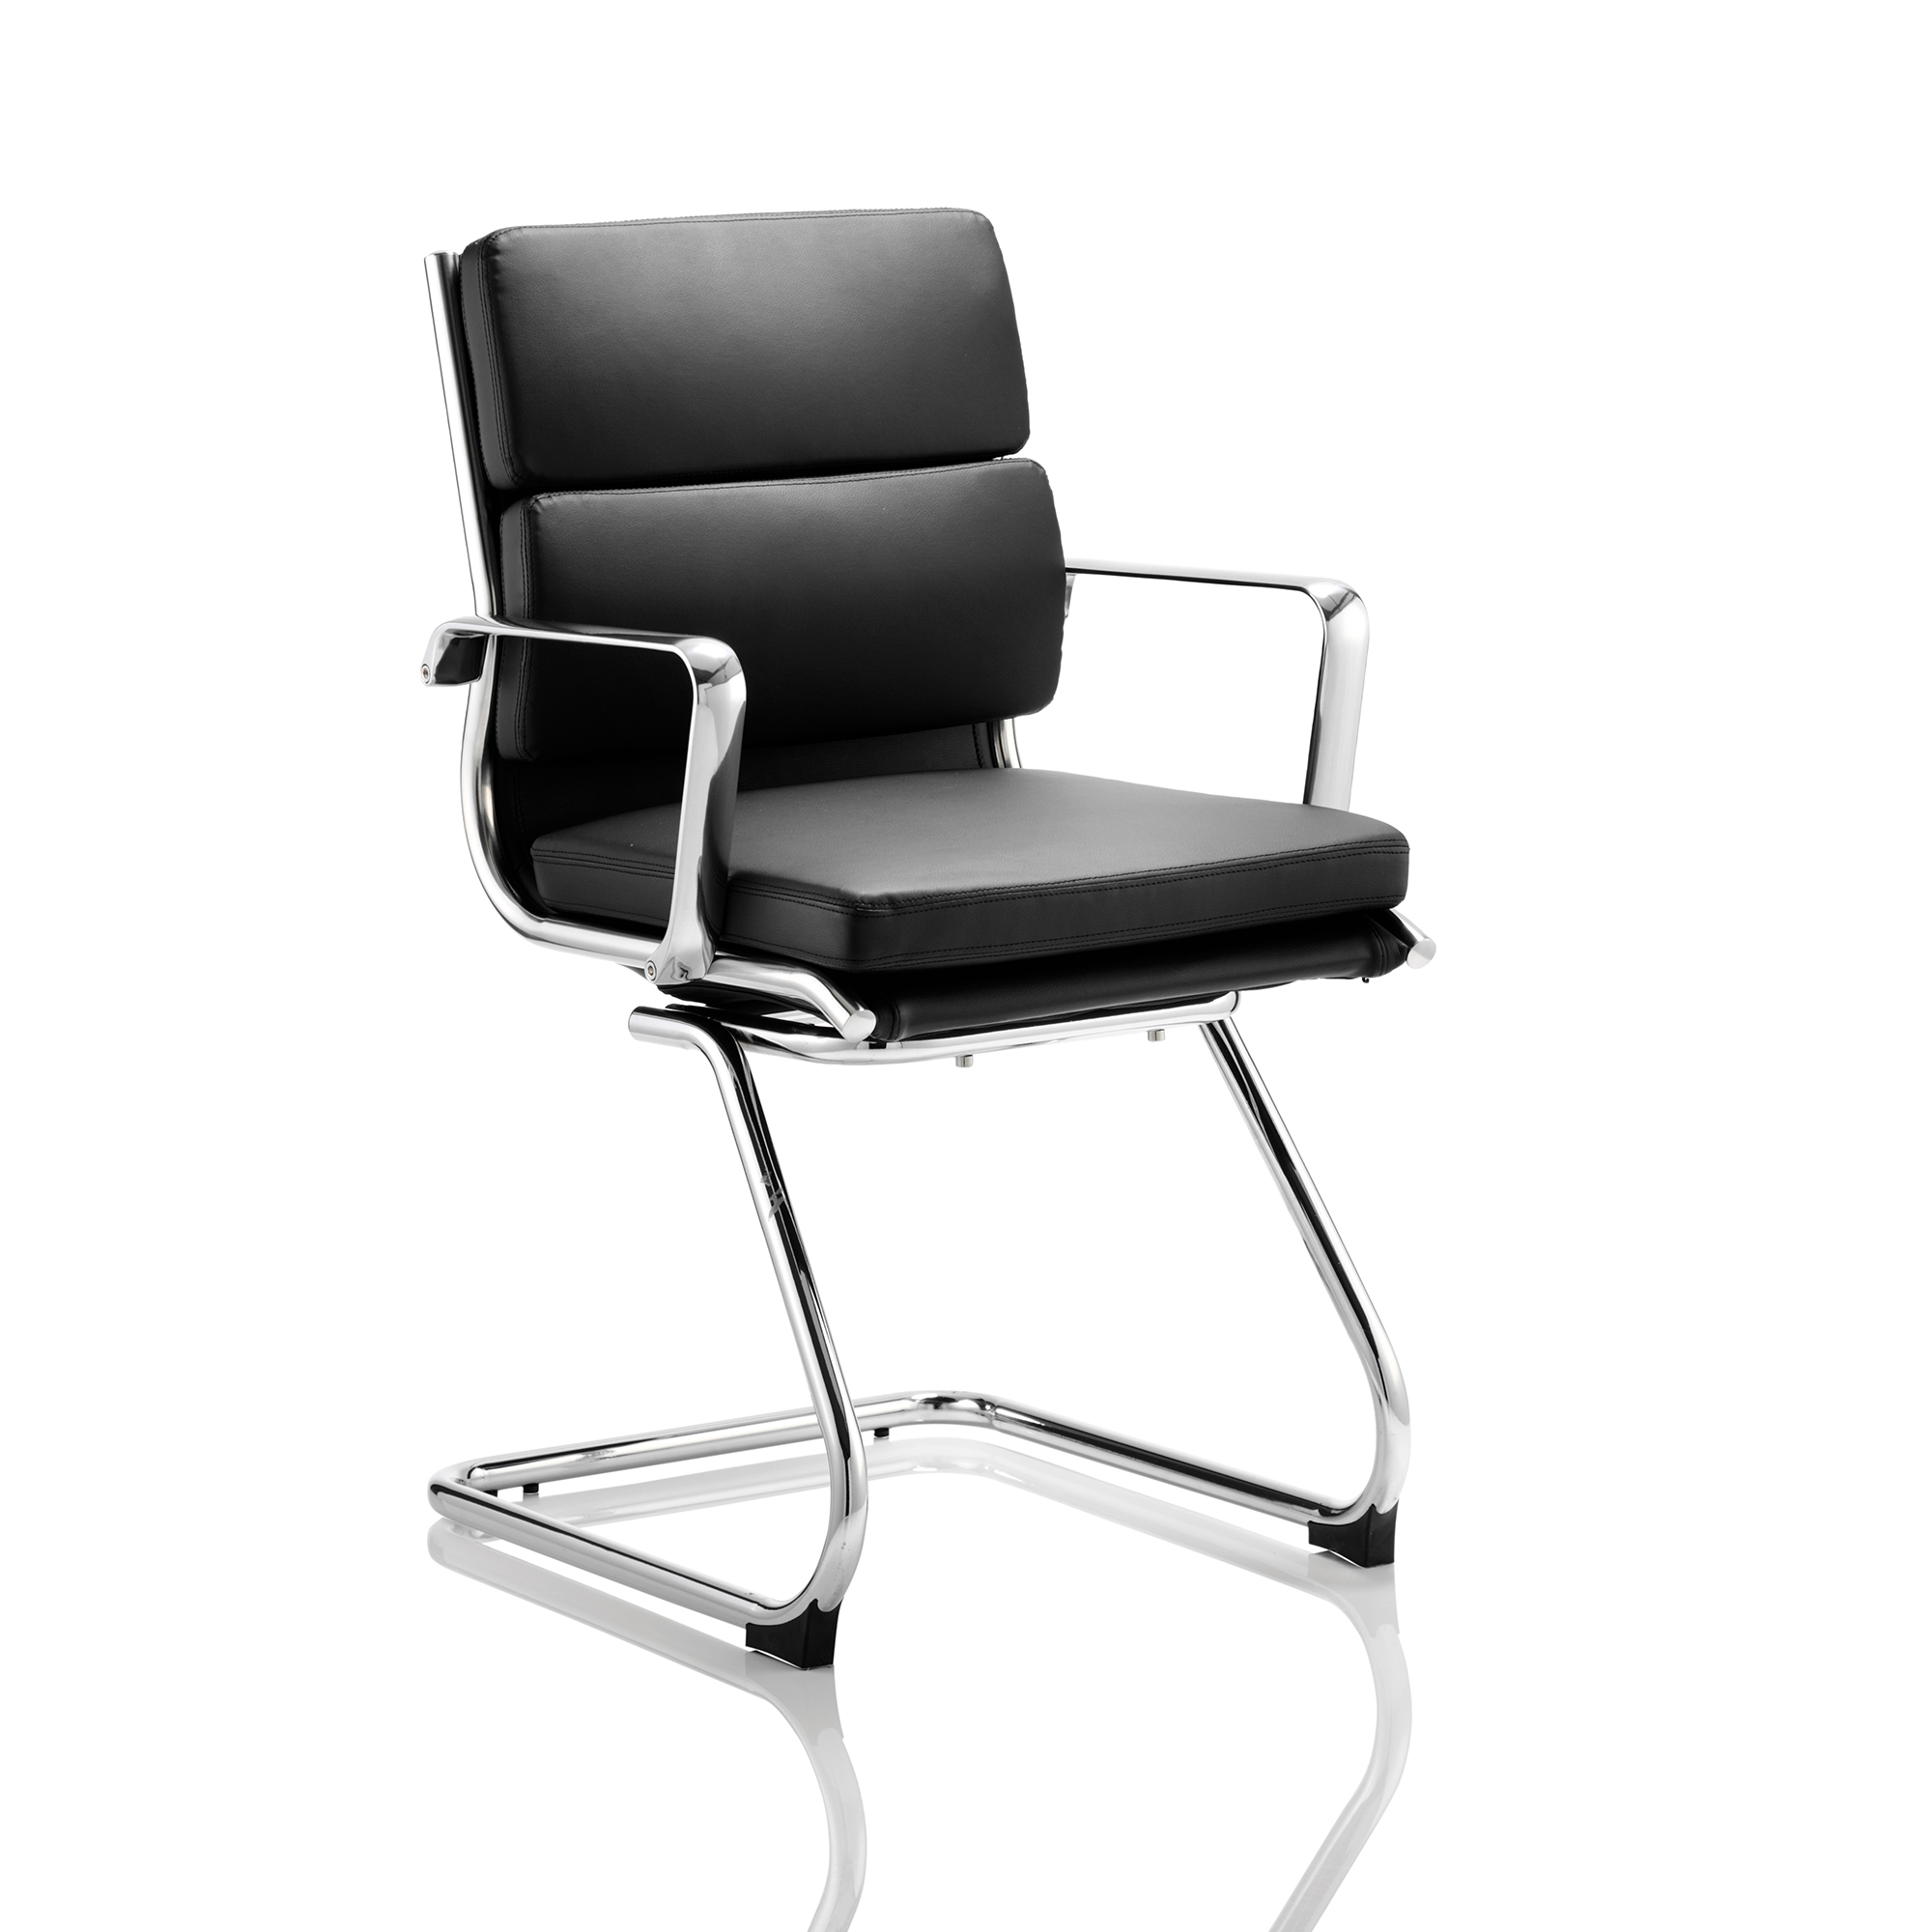 Sonix Savoy Cantilever Chair With Arms Bonded Leather Black Ref BR000126